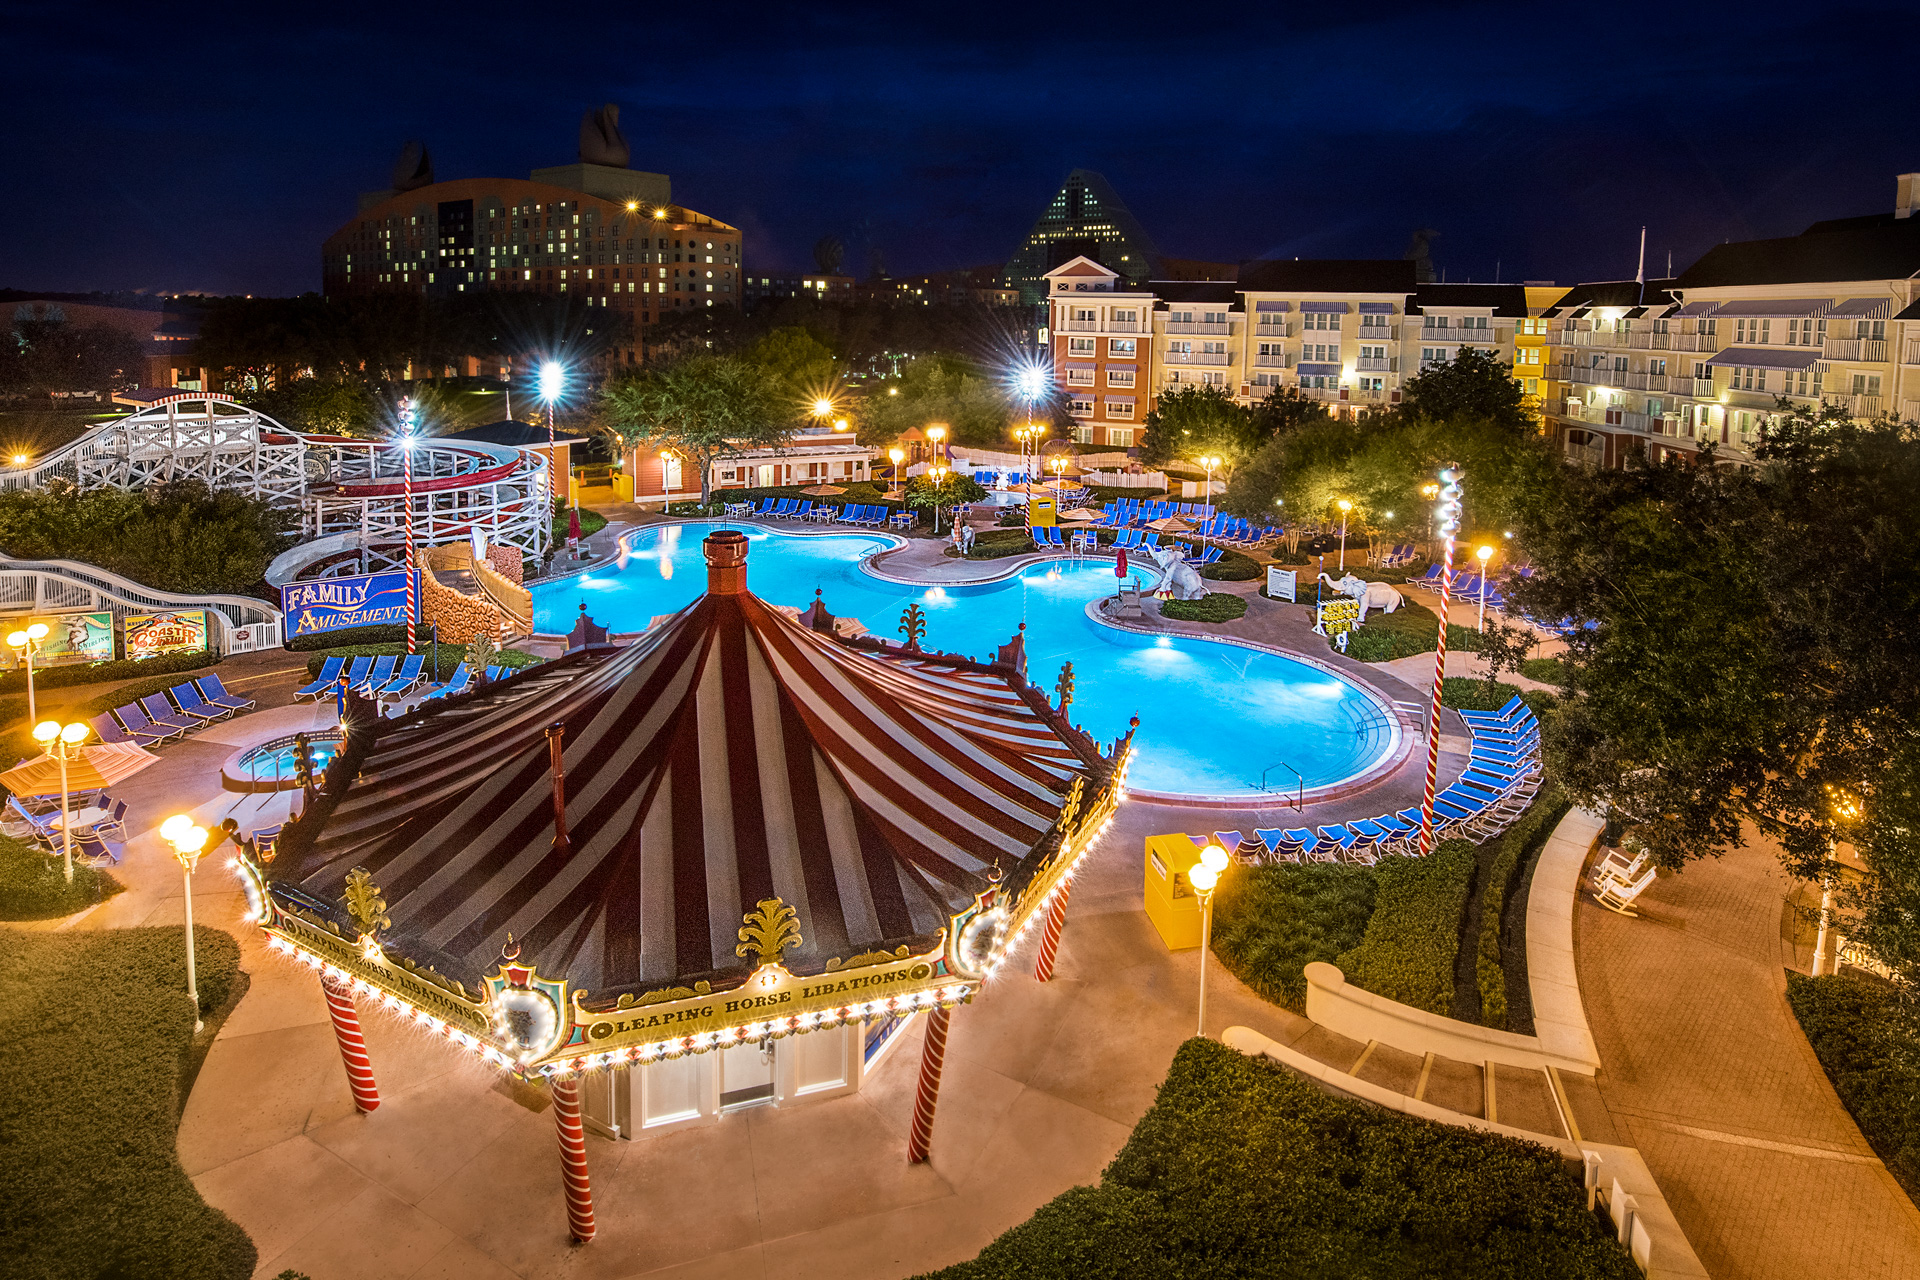 11 Best Disney World Resort Hotels for Families in 2020